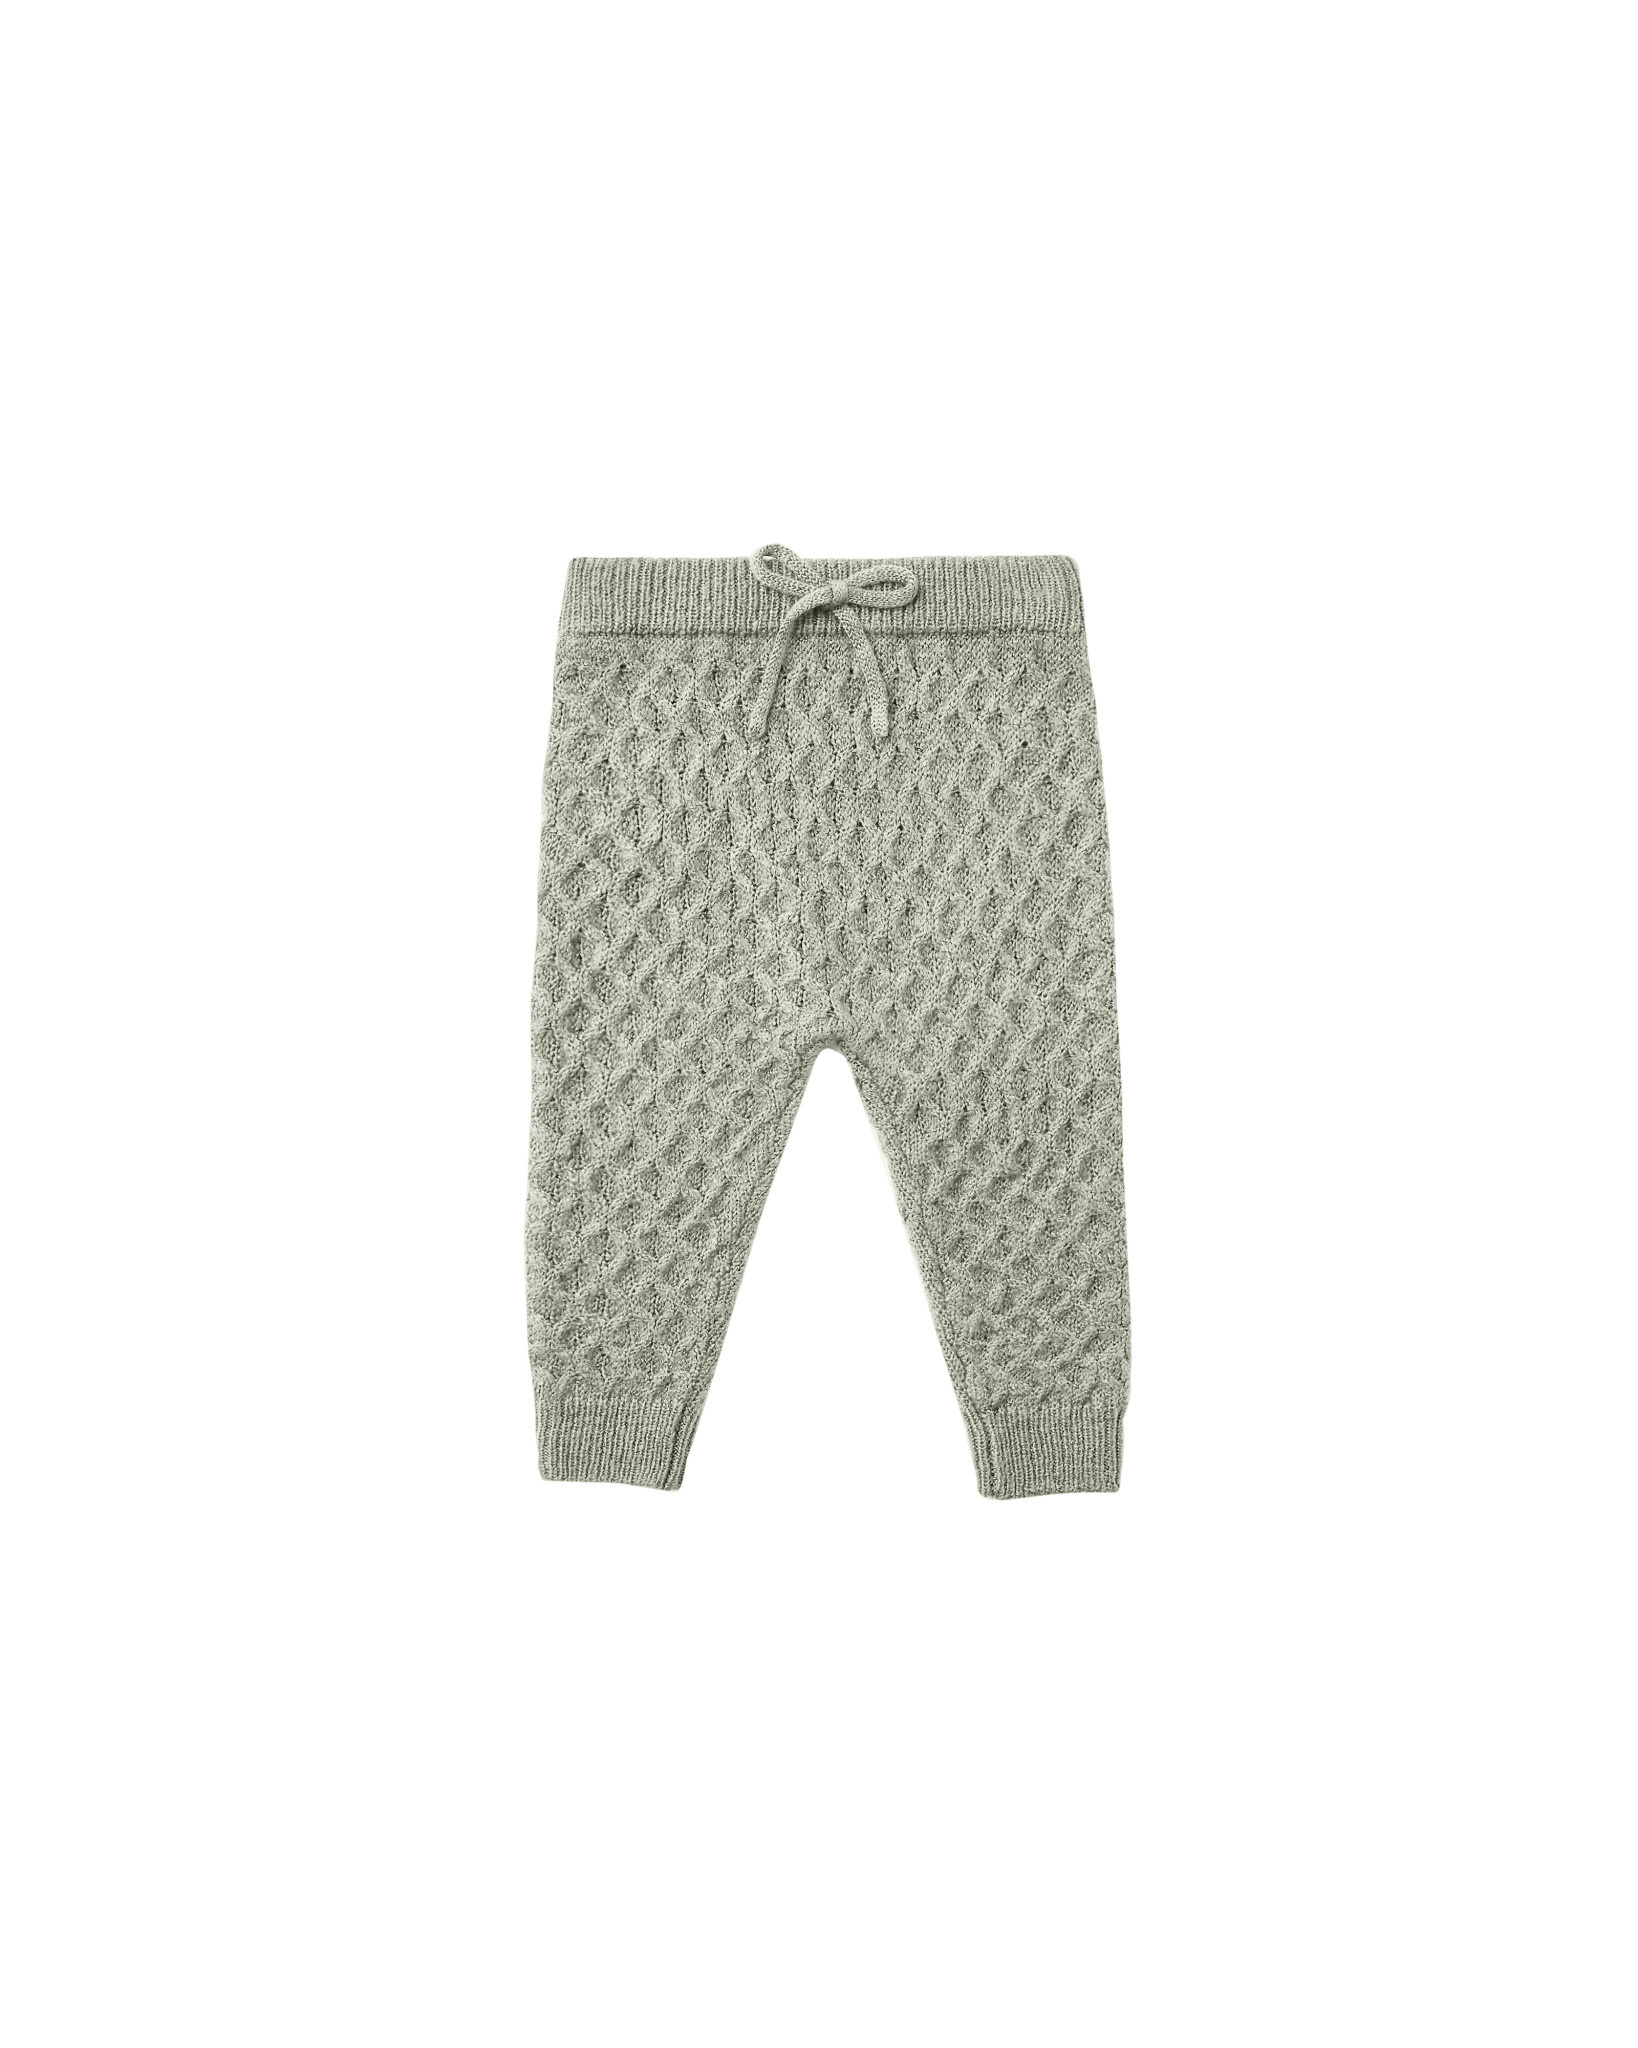 RYLEE AND CRU Knit Gable Pant